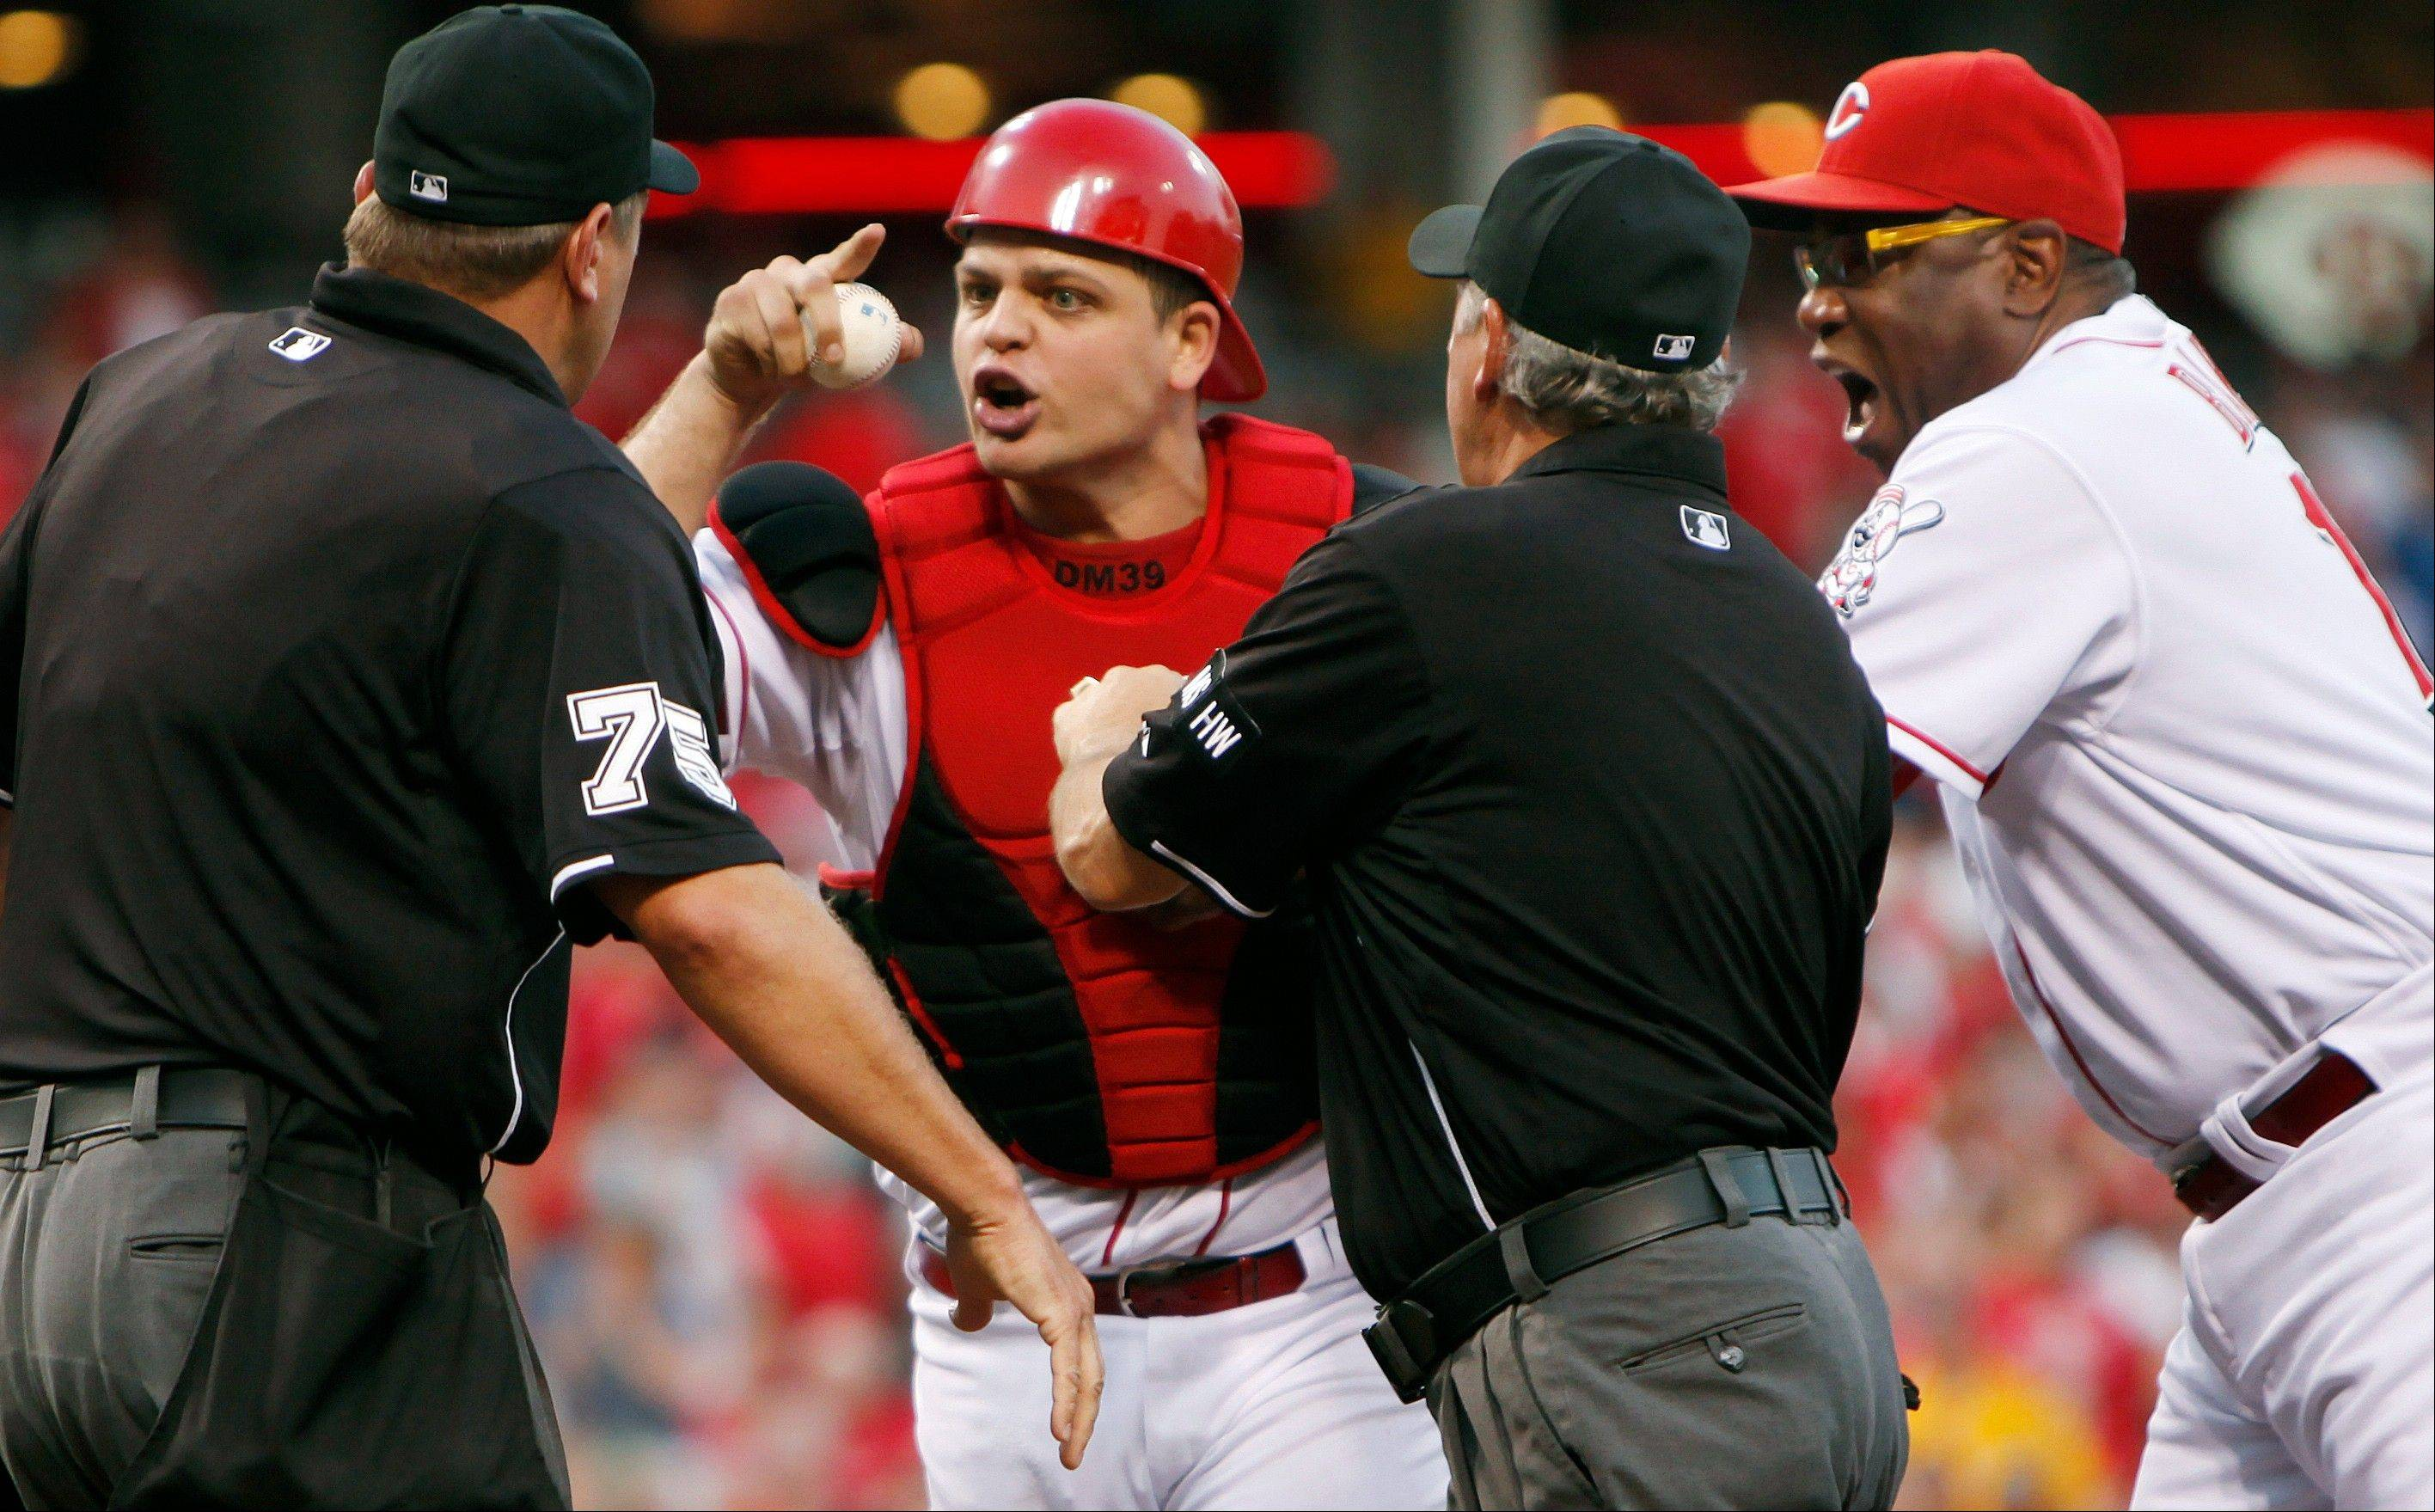 Reds catcher Devin Mesoraco yells at home plate umpire Chad Fairchild as head coach Dusty Baker, right, steps in to pull him back after Mesoraco was ejected for arguing balls and strikes in the third inning Monday at home